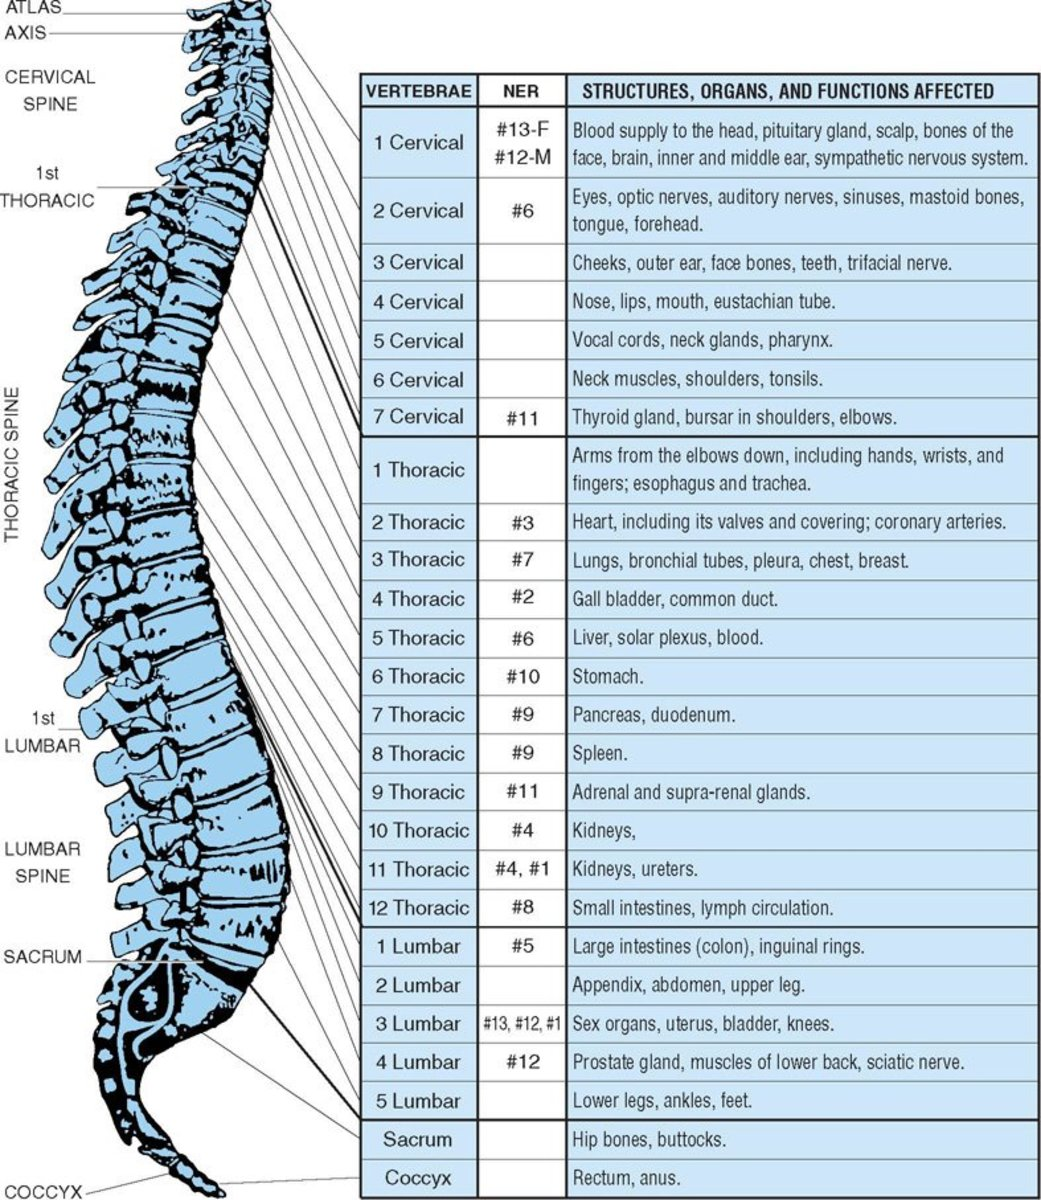 chiropractic-services-the-underrated-overlooked-medical-treatment